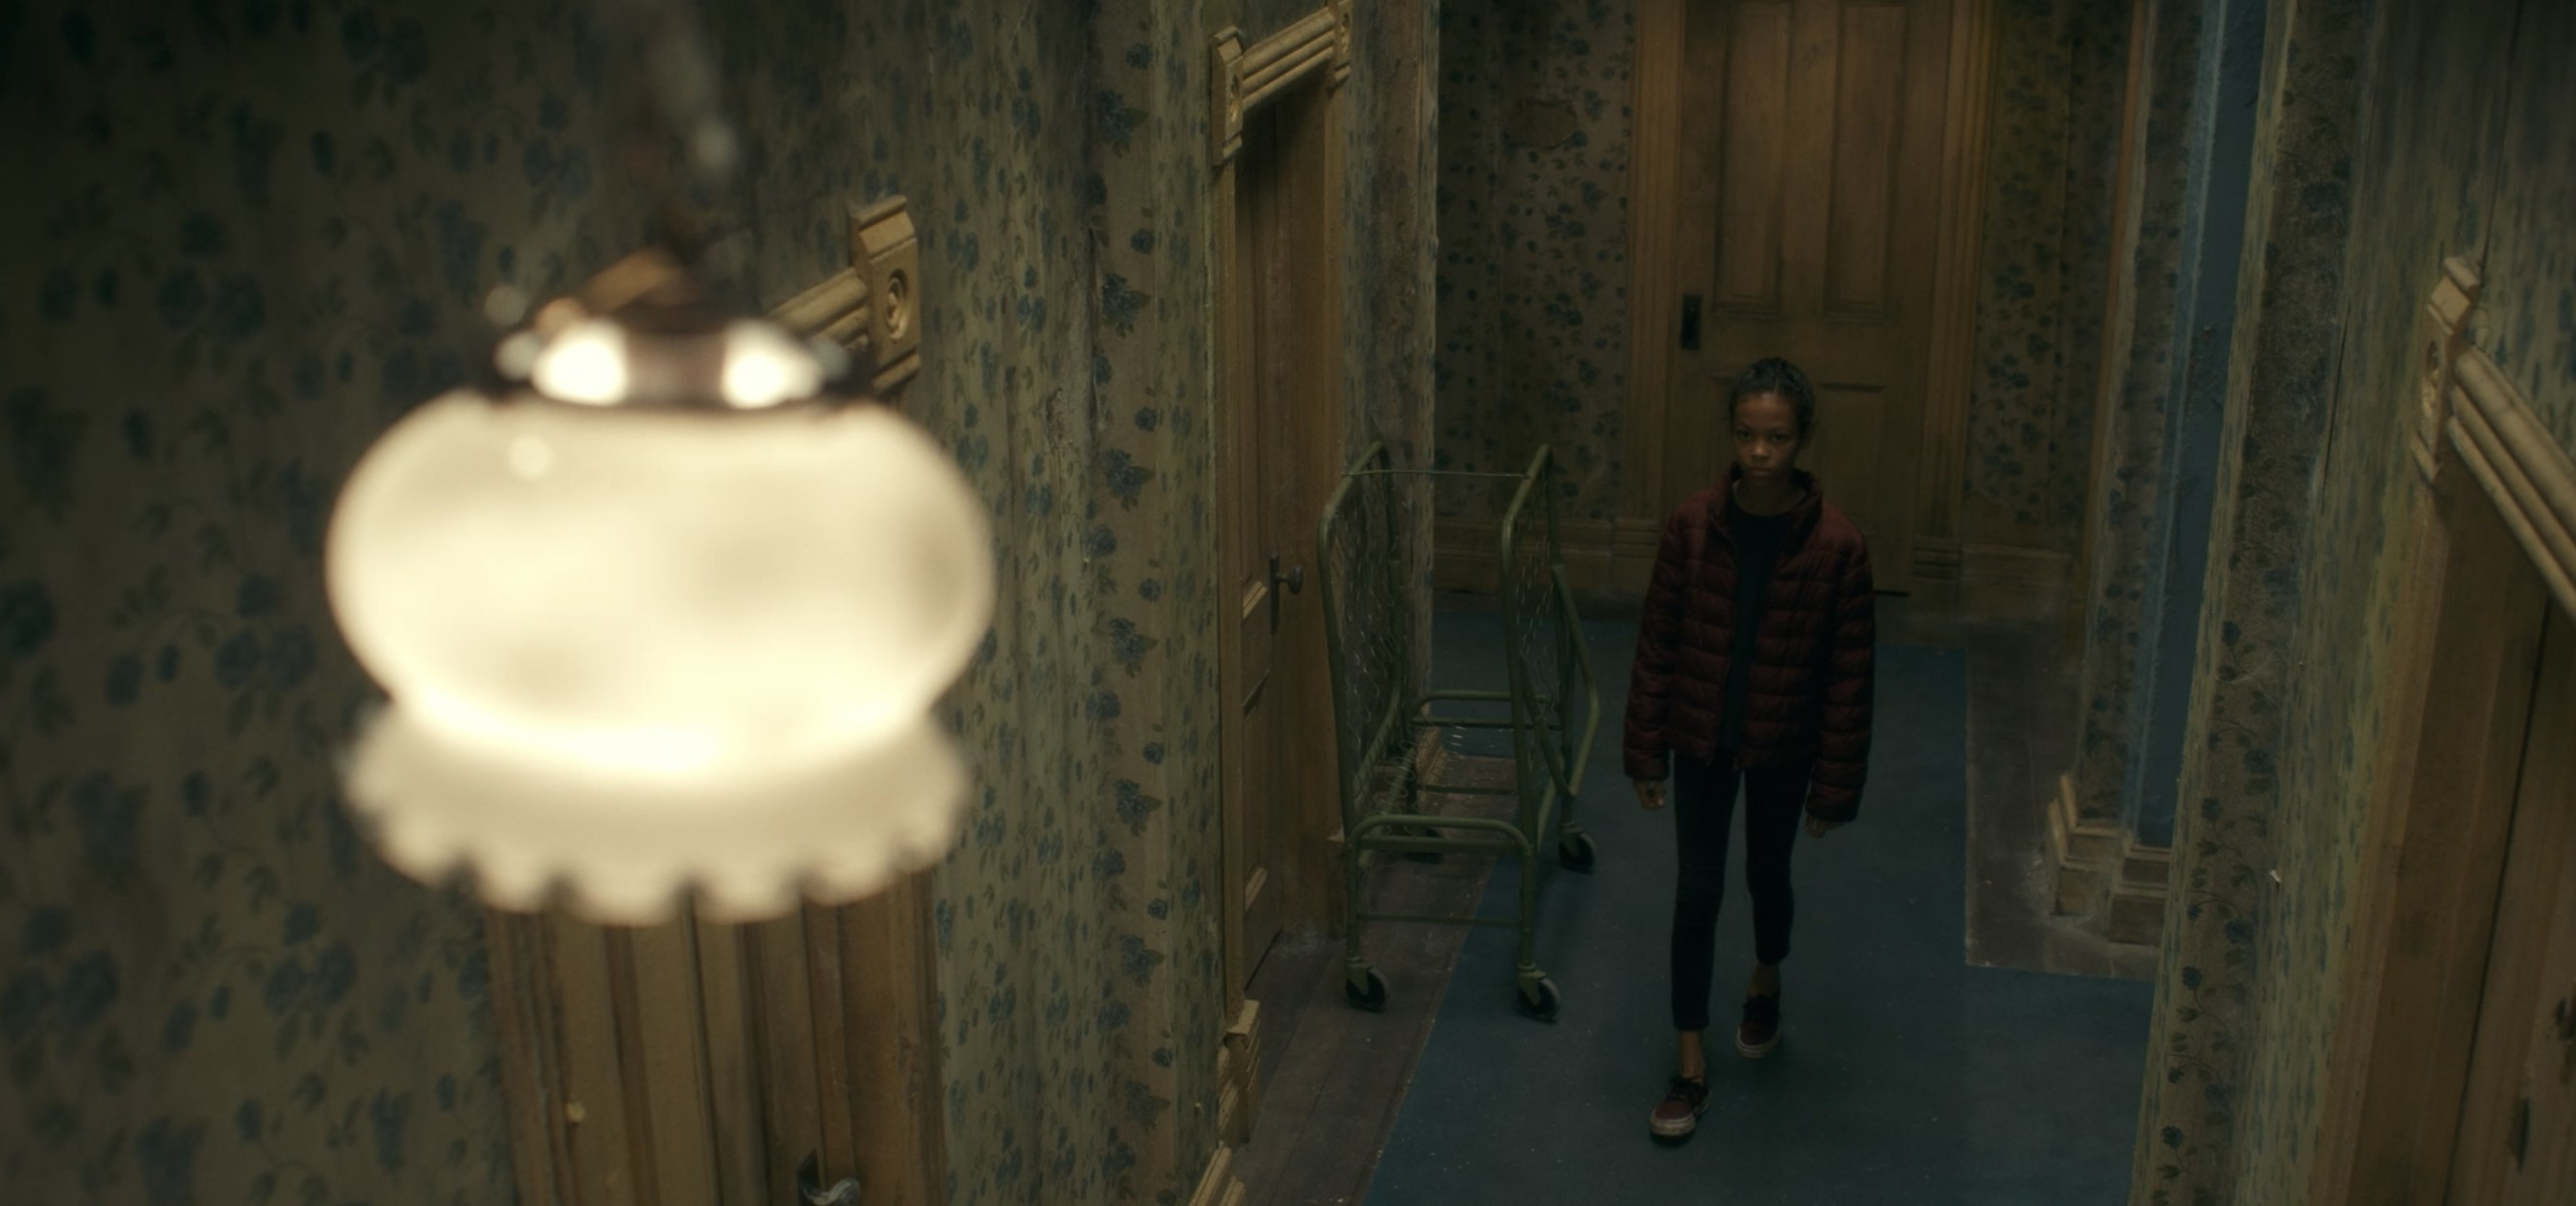 A child standing in a hotel corridor staring at a ceiling light